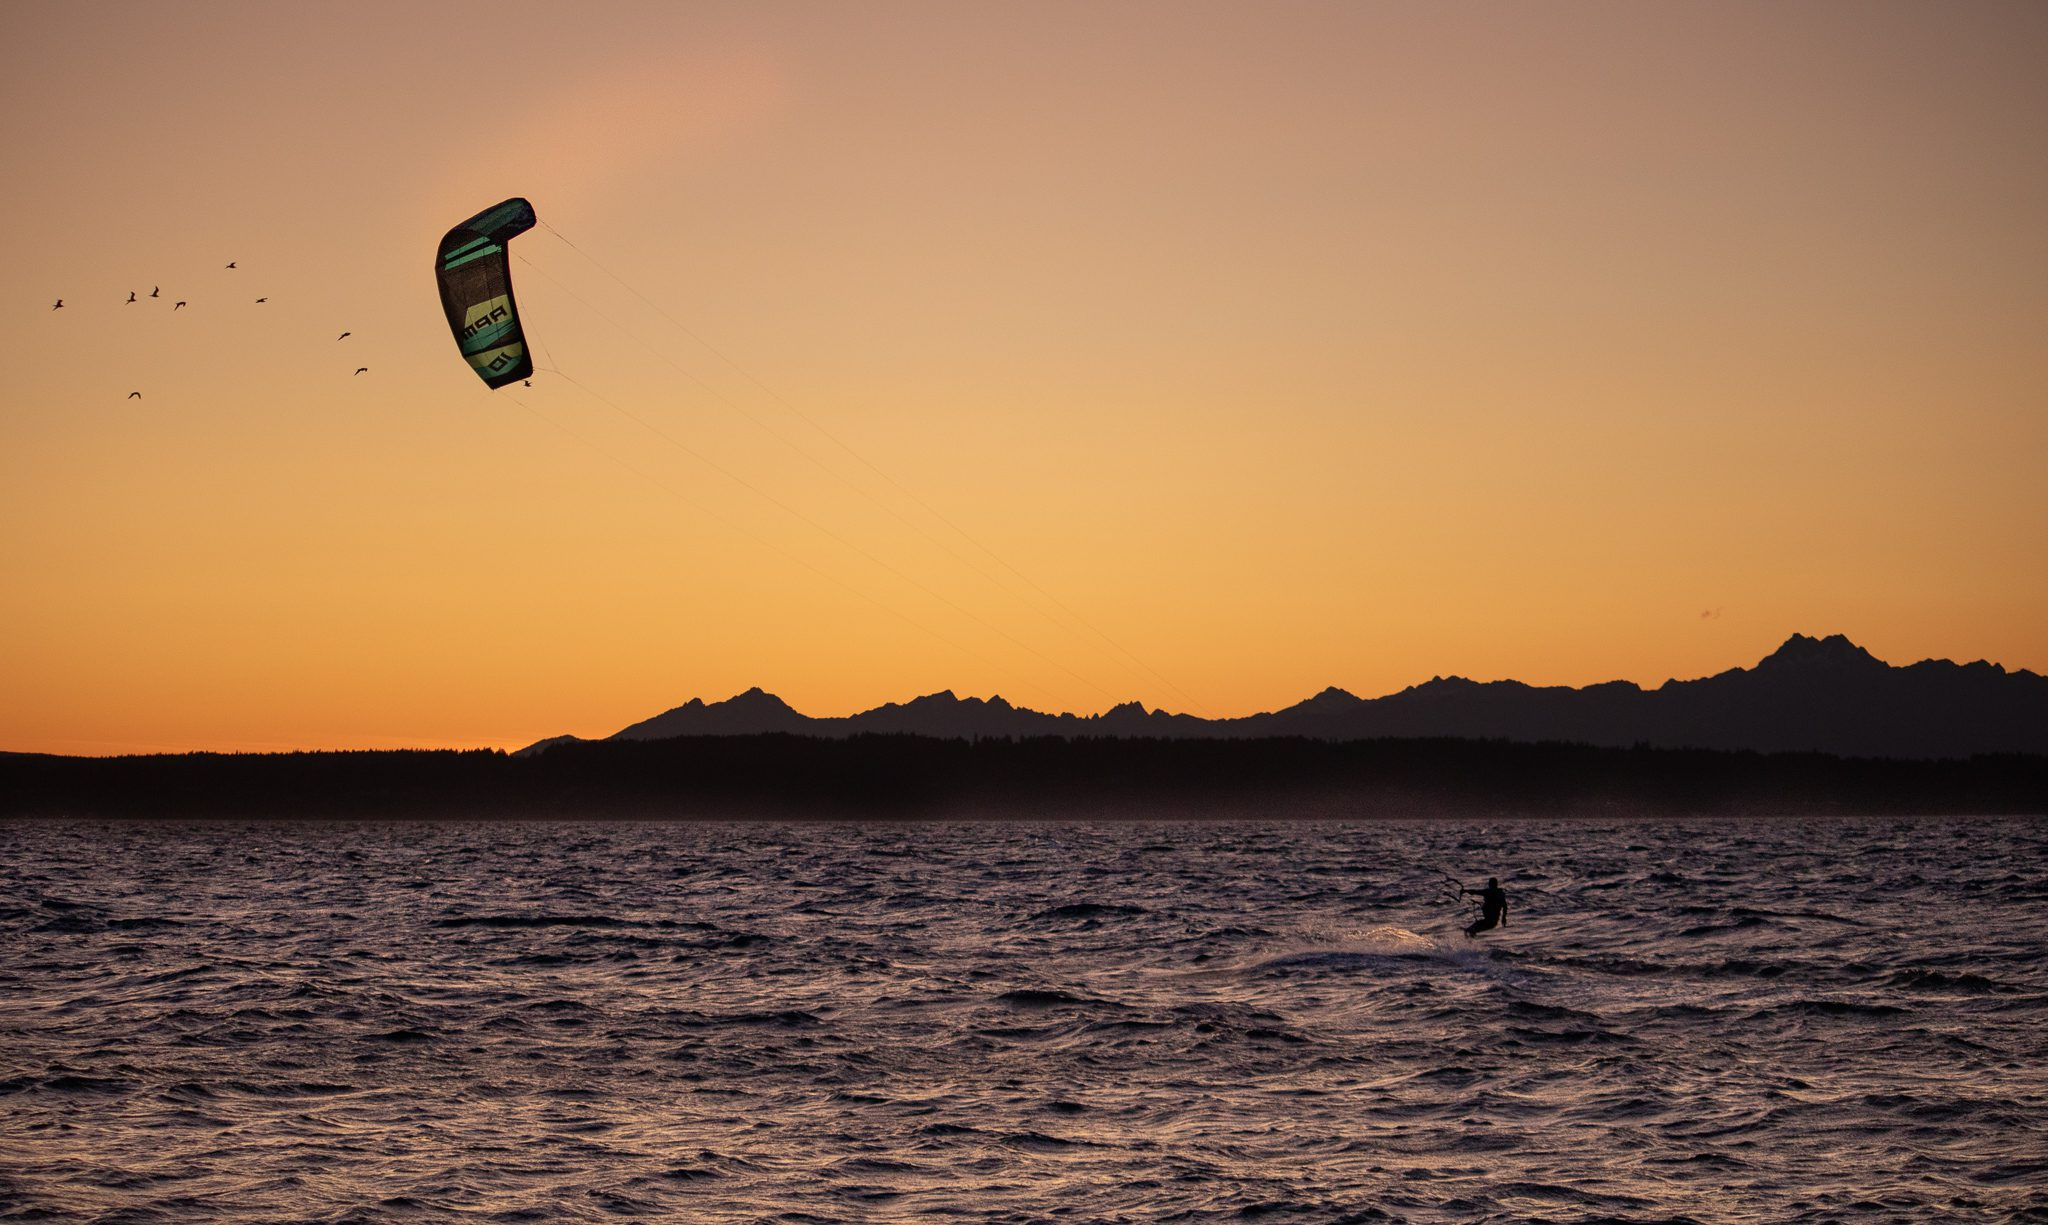 birds and kiteboarder at sunset